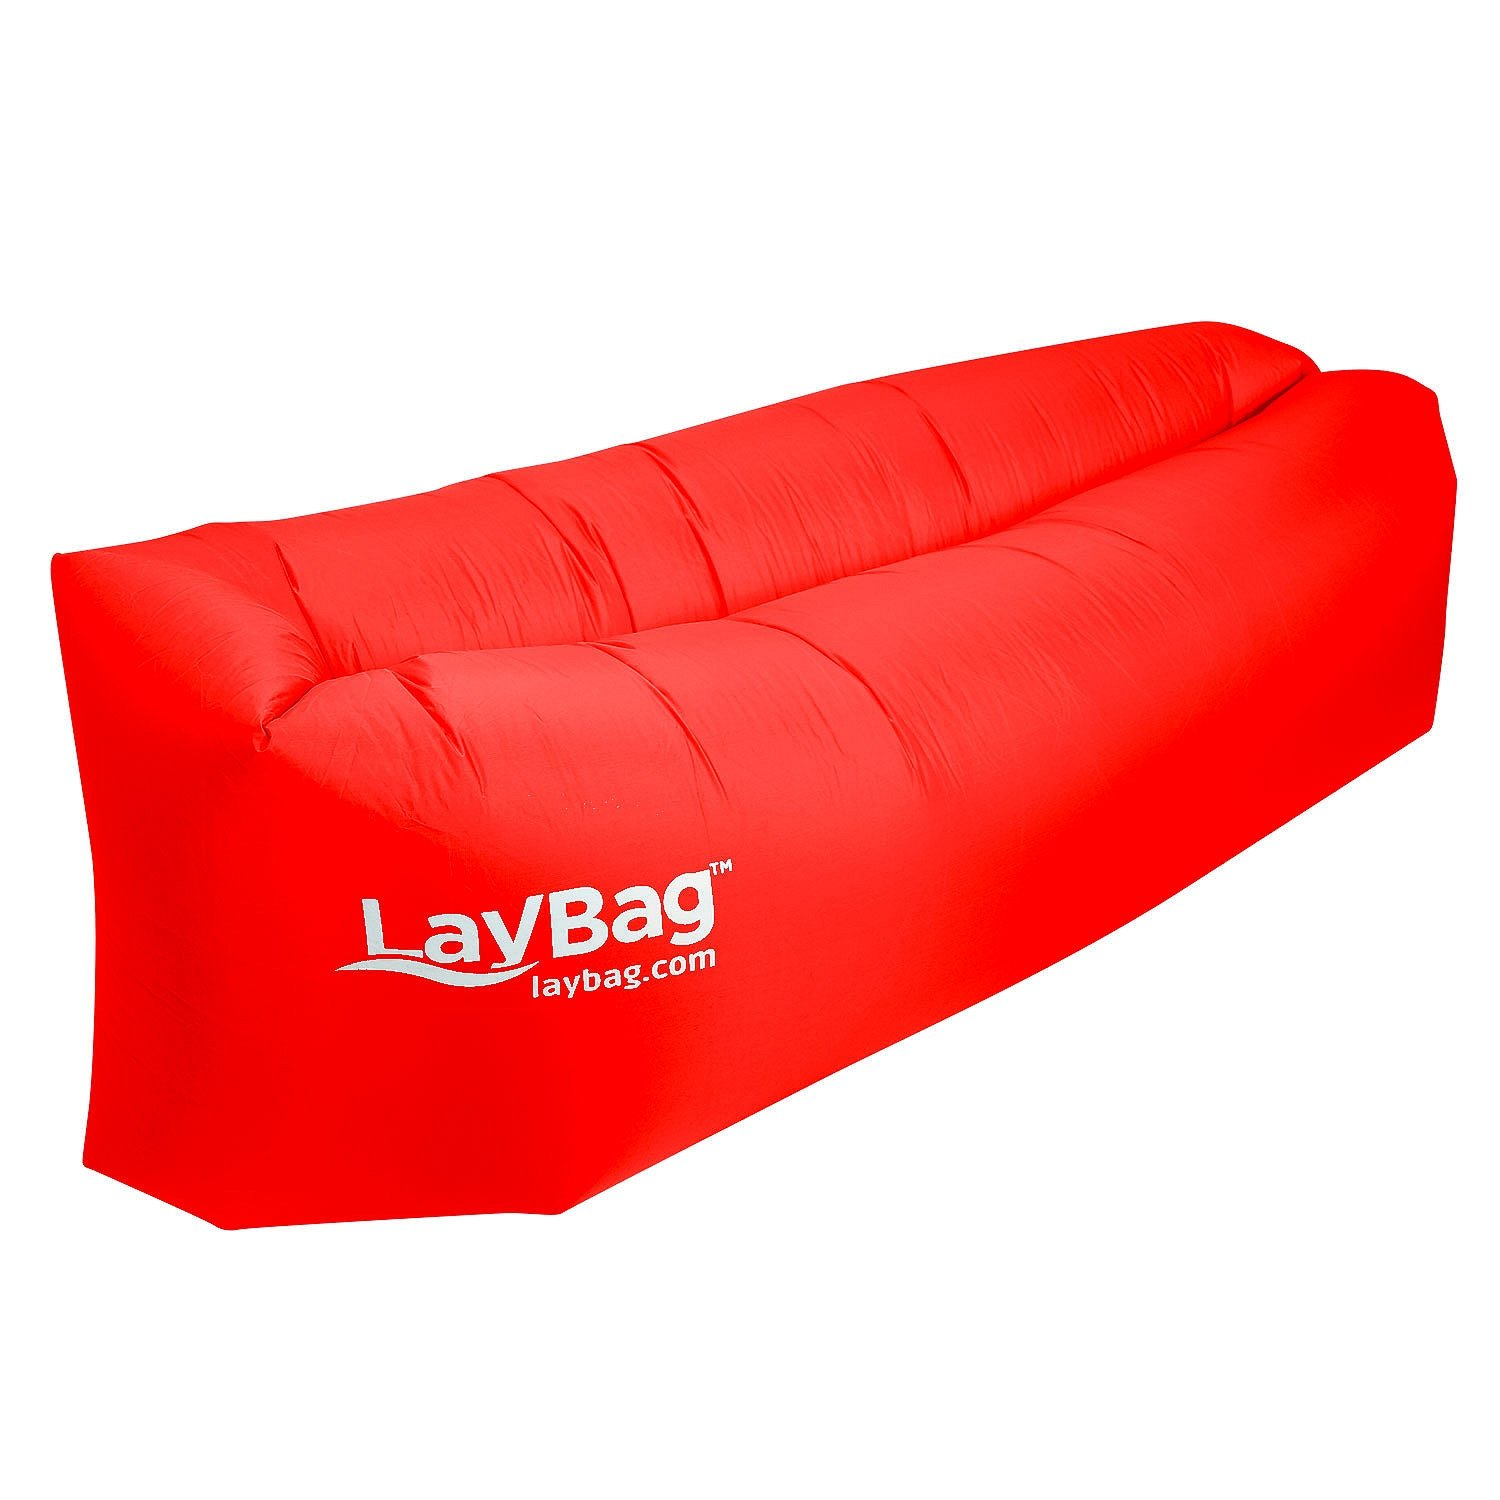 LayBag Inflatable Air Lounge, Ruby Red